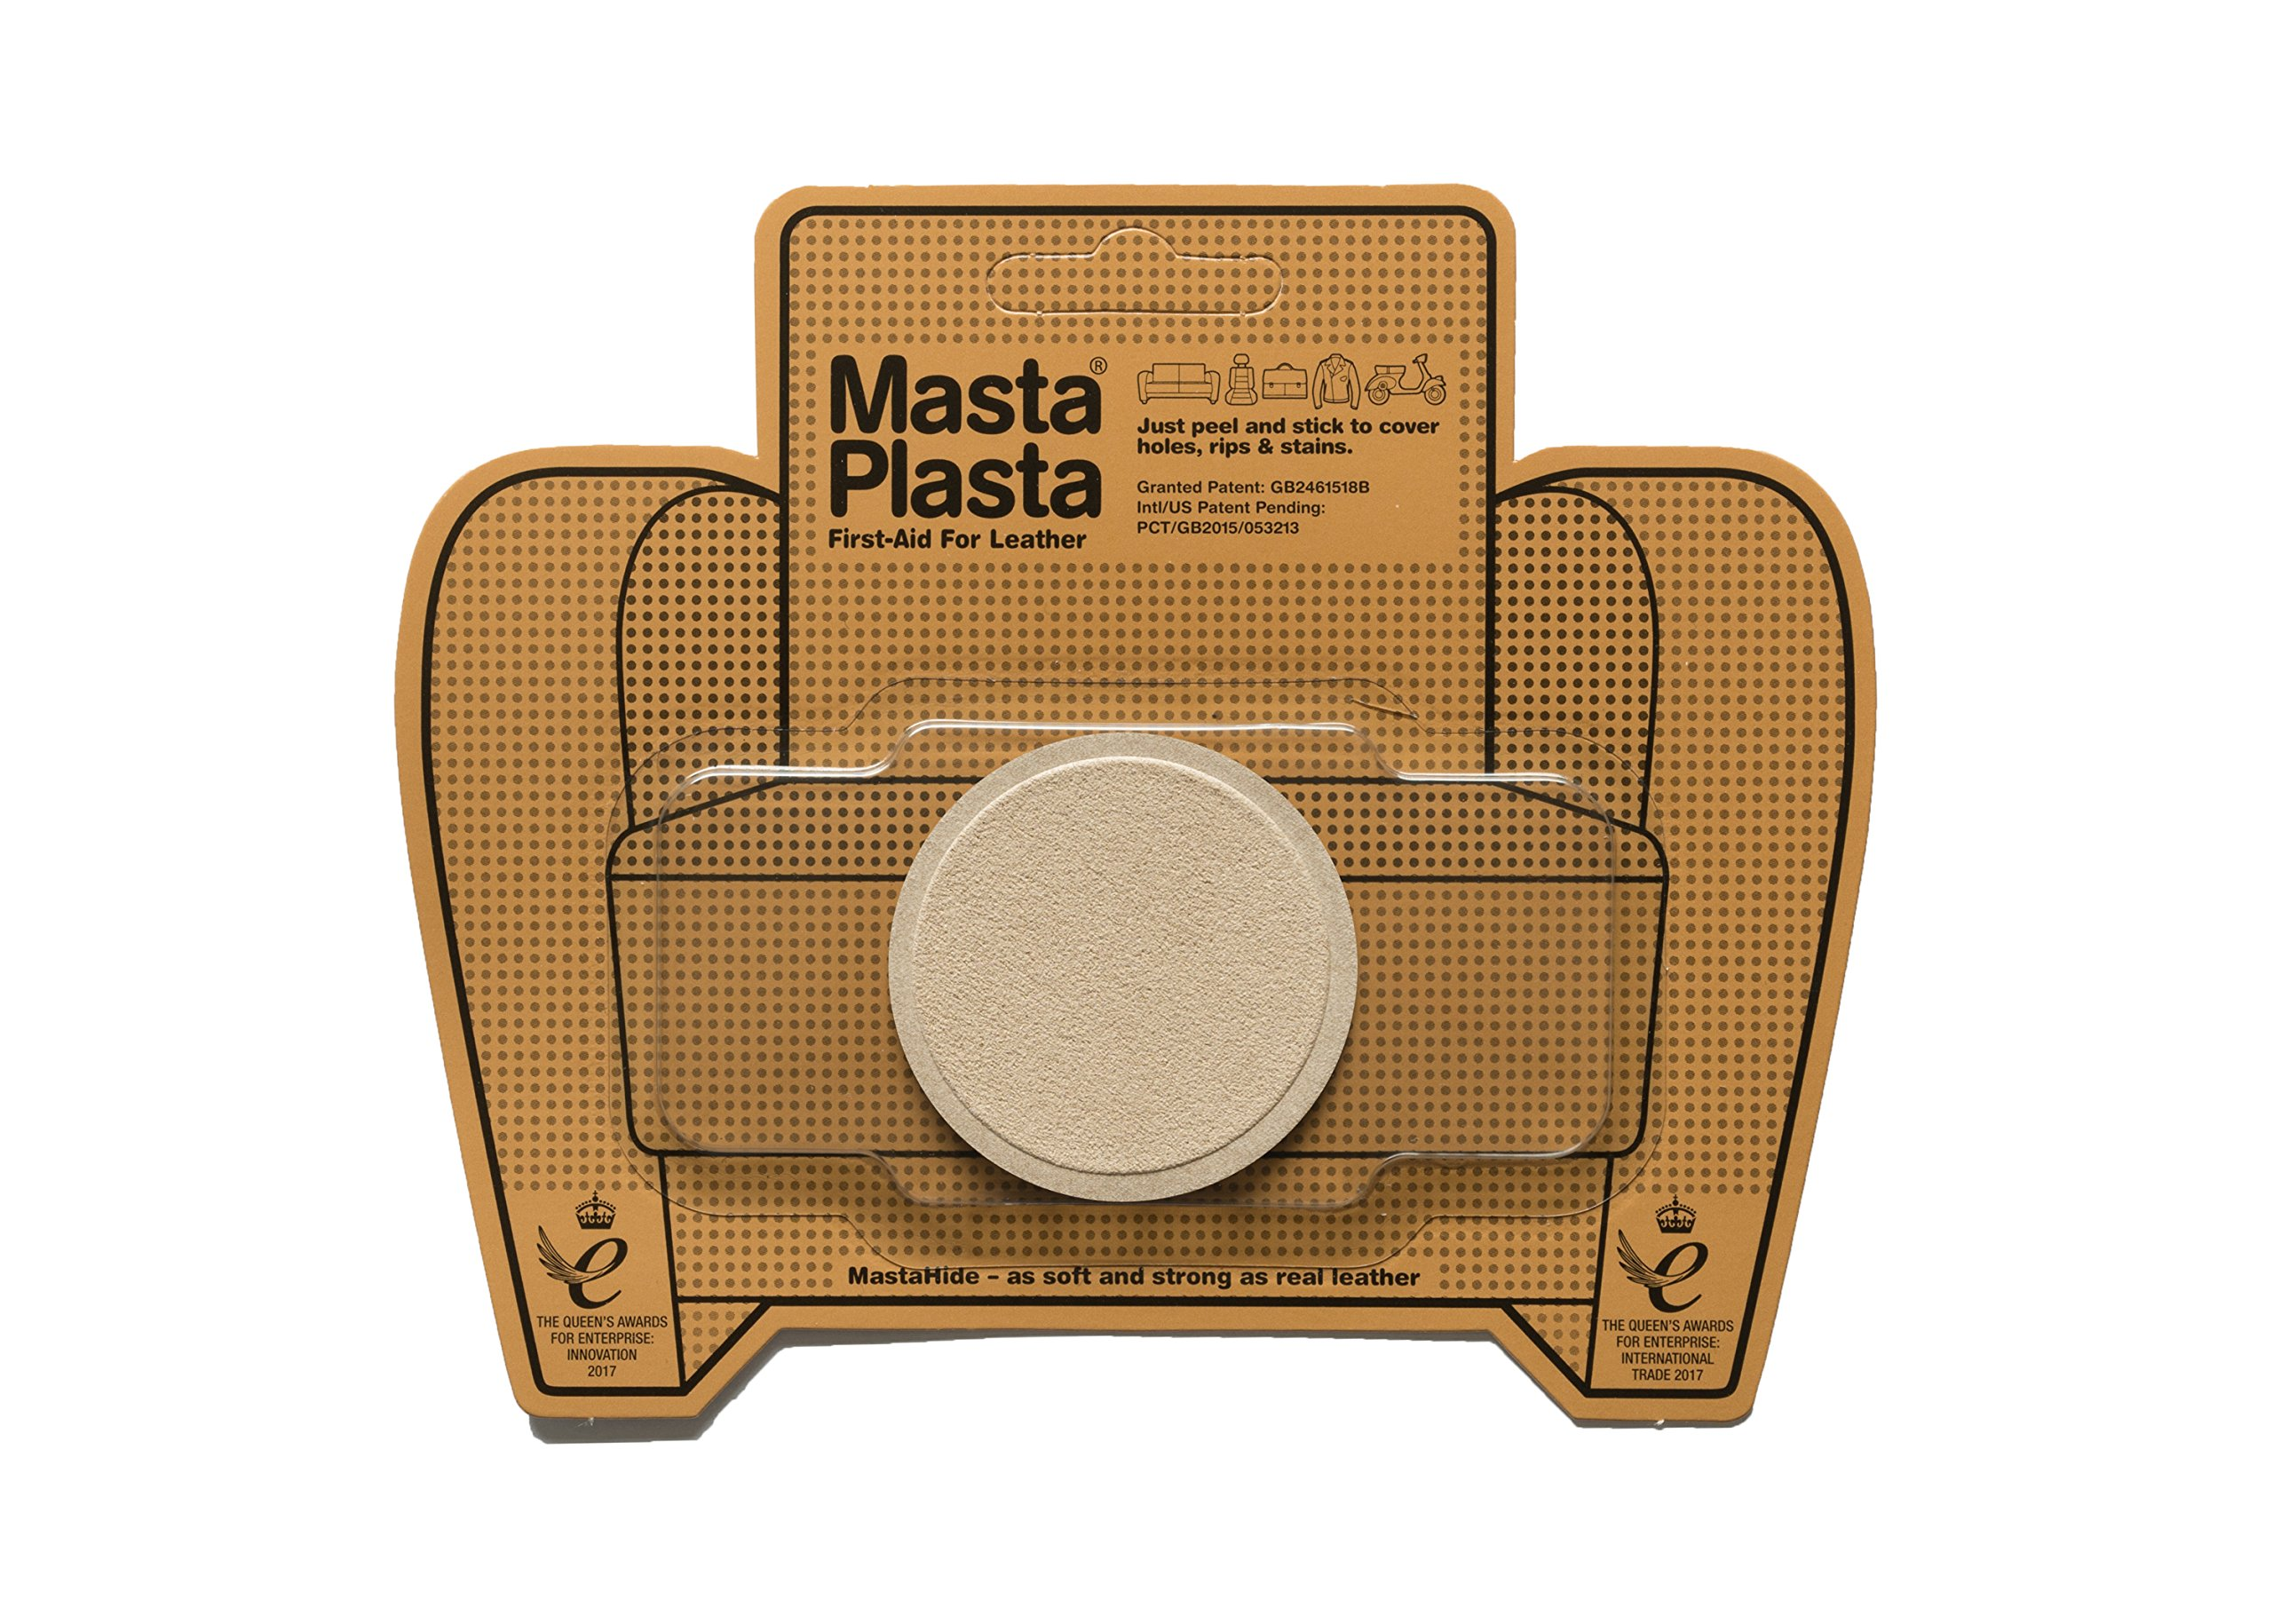 MastaPlasta, Leather Repair Patch, First-aid for Sofas Car Seats, Handbags Jackets, Beige Suede Small Circle